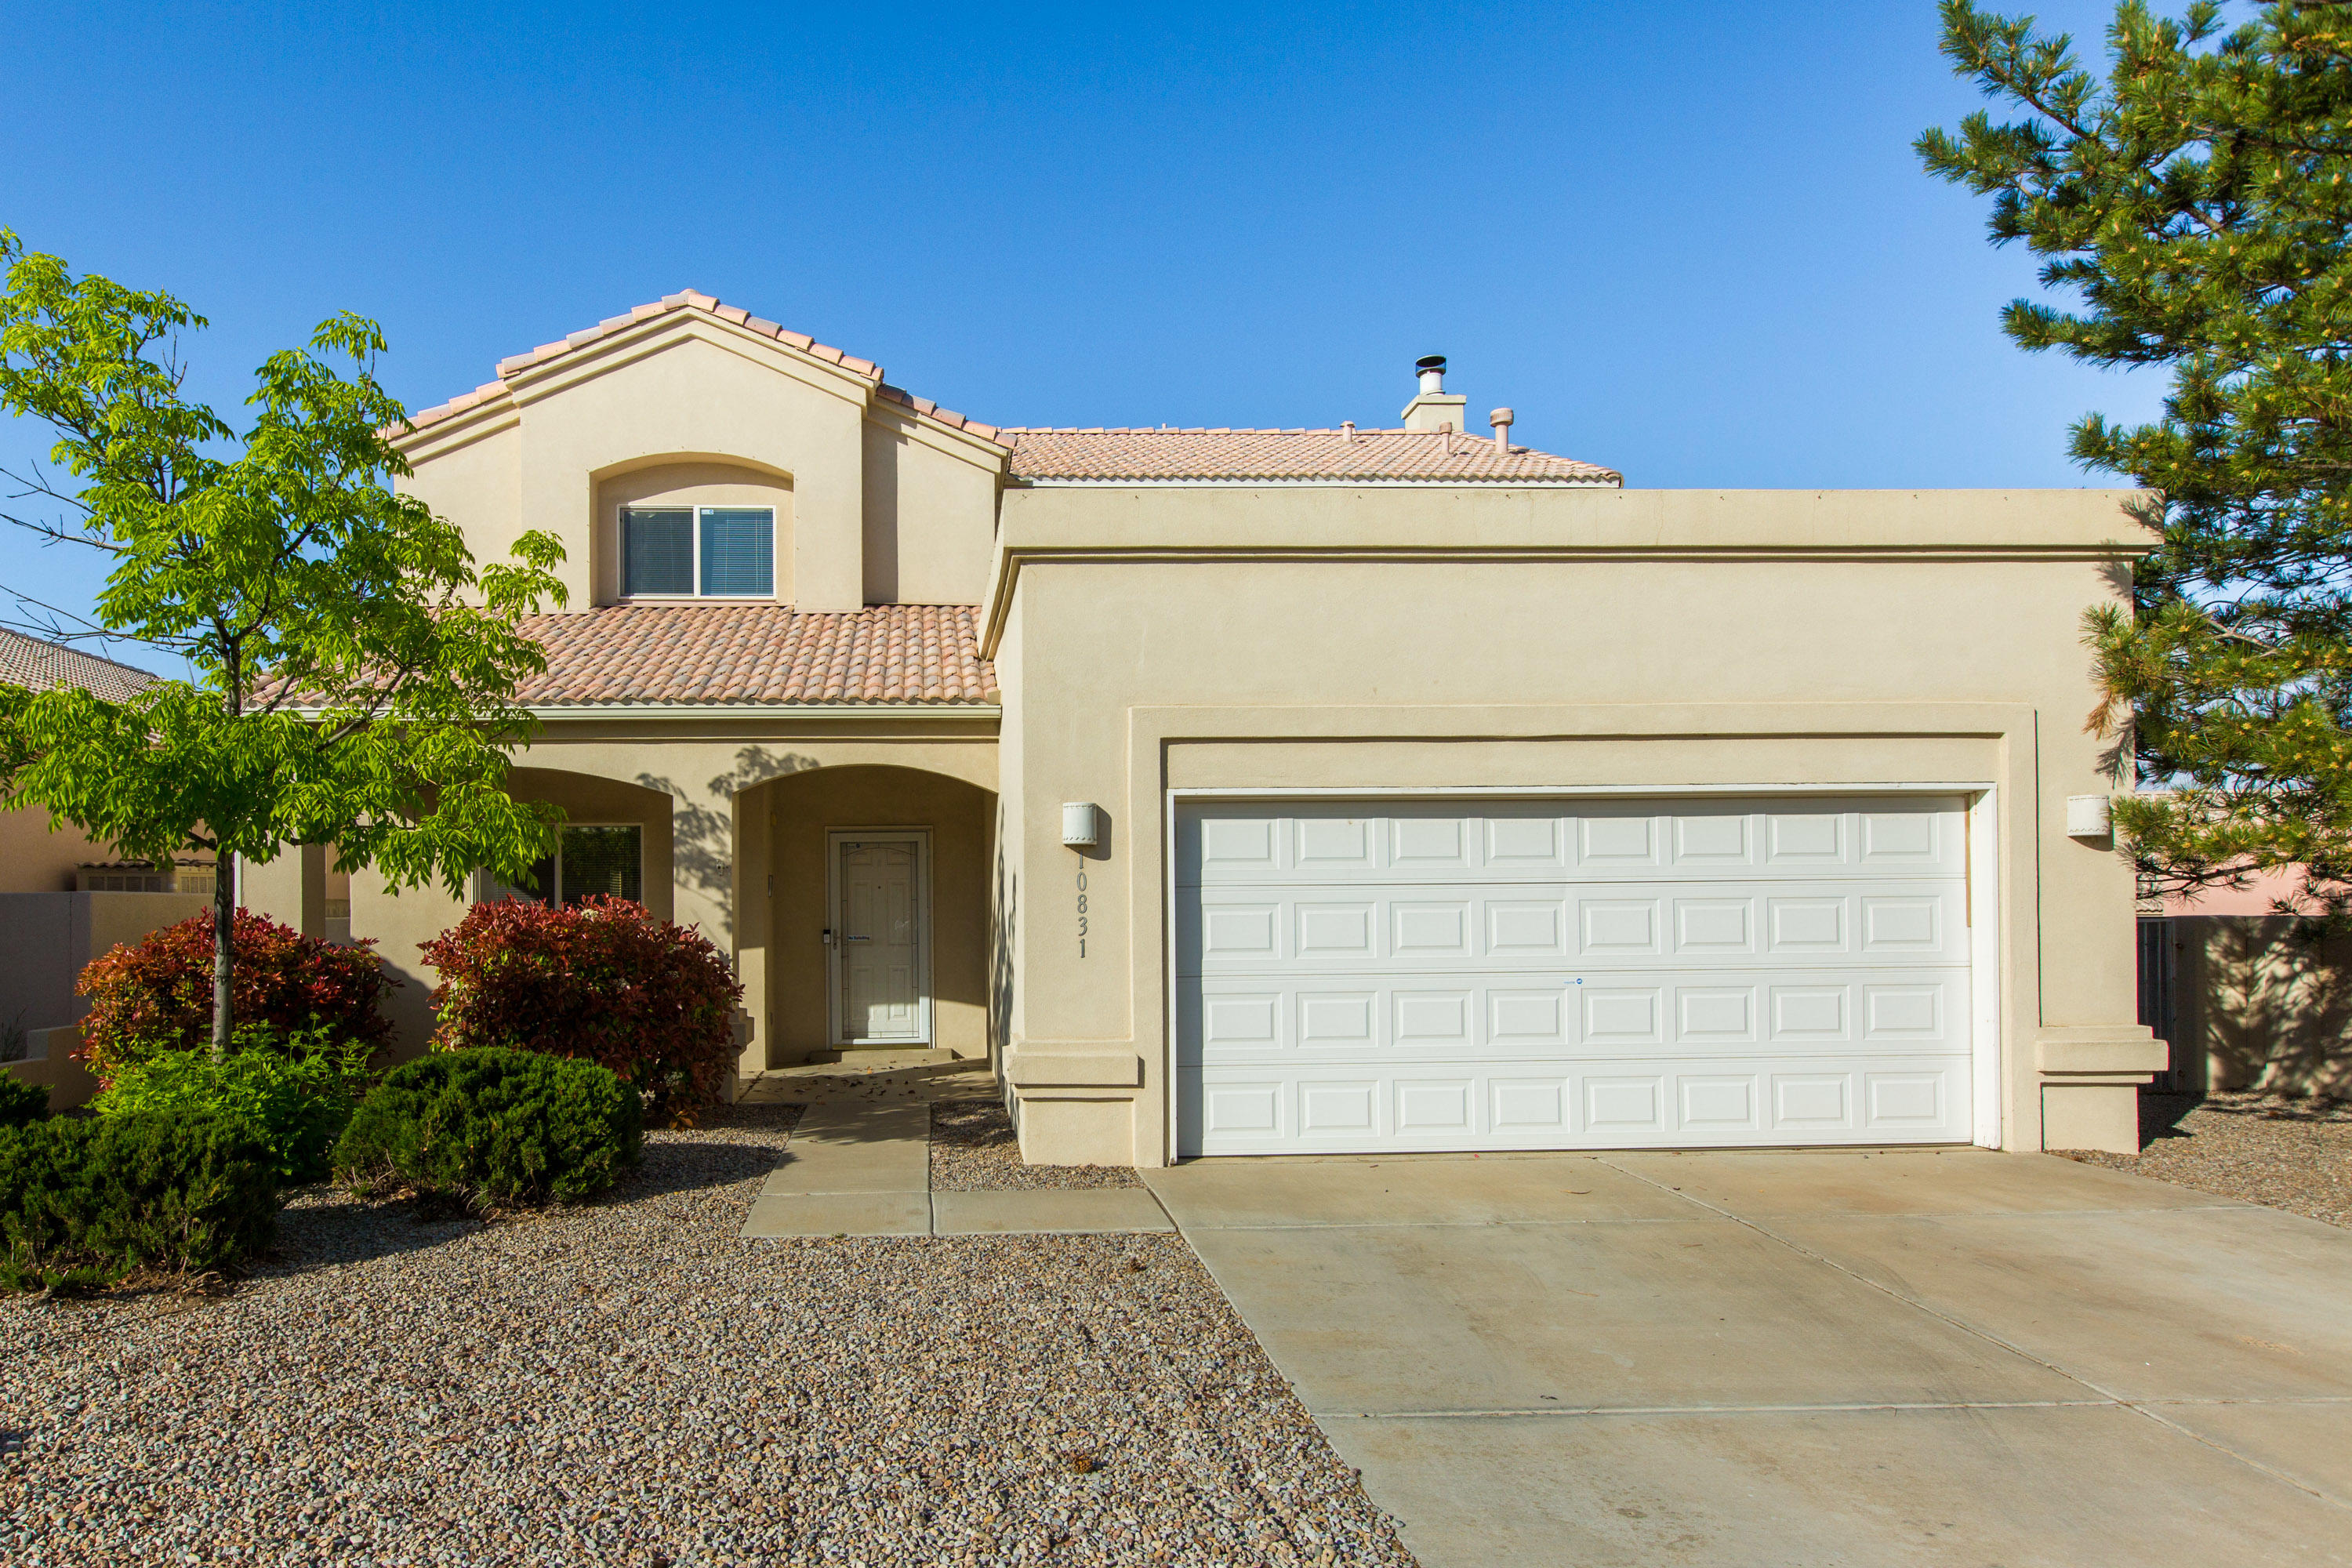 Beautiful FOUR bedroom, 2488 sq ft home in SEVEN BAR NORTH subdivision near Cottonwood Mall. Open floor plan, with large great room,high ceilings, fireplace and built-in bookcases. Formal dinning, eat in kitchen with oversize patio doors that open on to covered patio area. Large master bedroomwith balcony, walk-in closet, separate tub and shower. All bedrooms are upstairs. Finished 2 car garage. Landscaped front and backyard, Tile roof